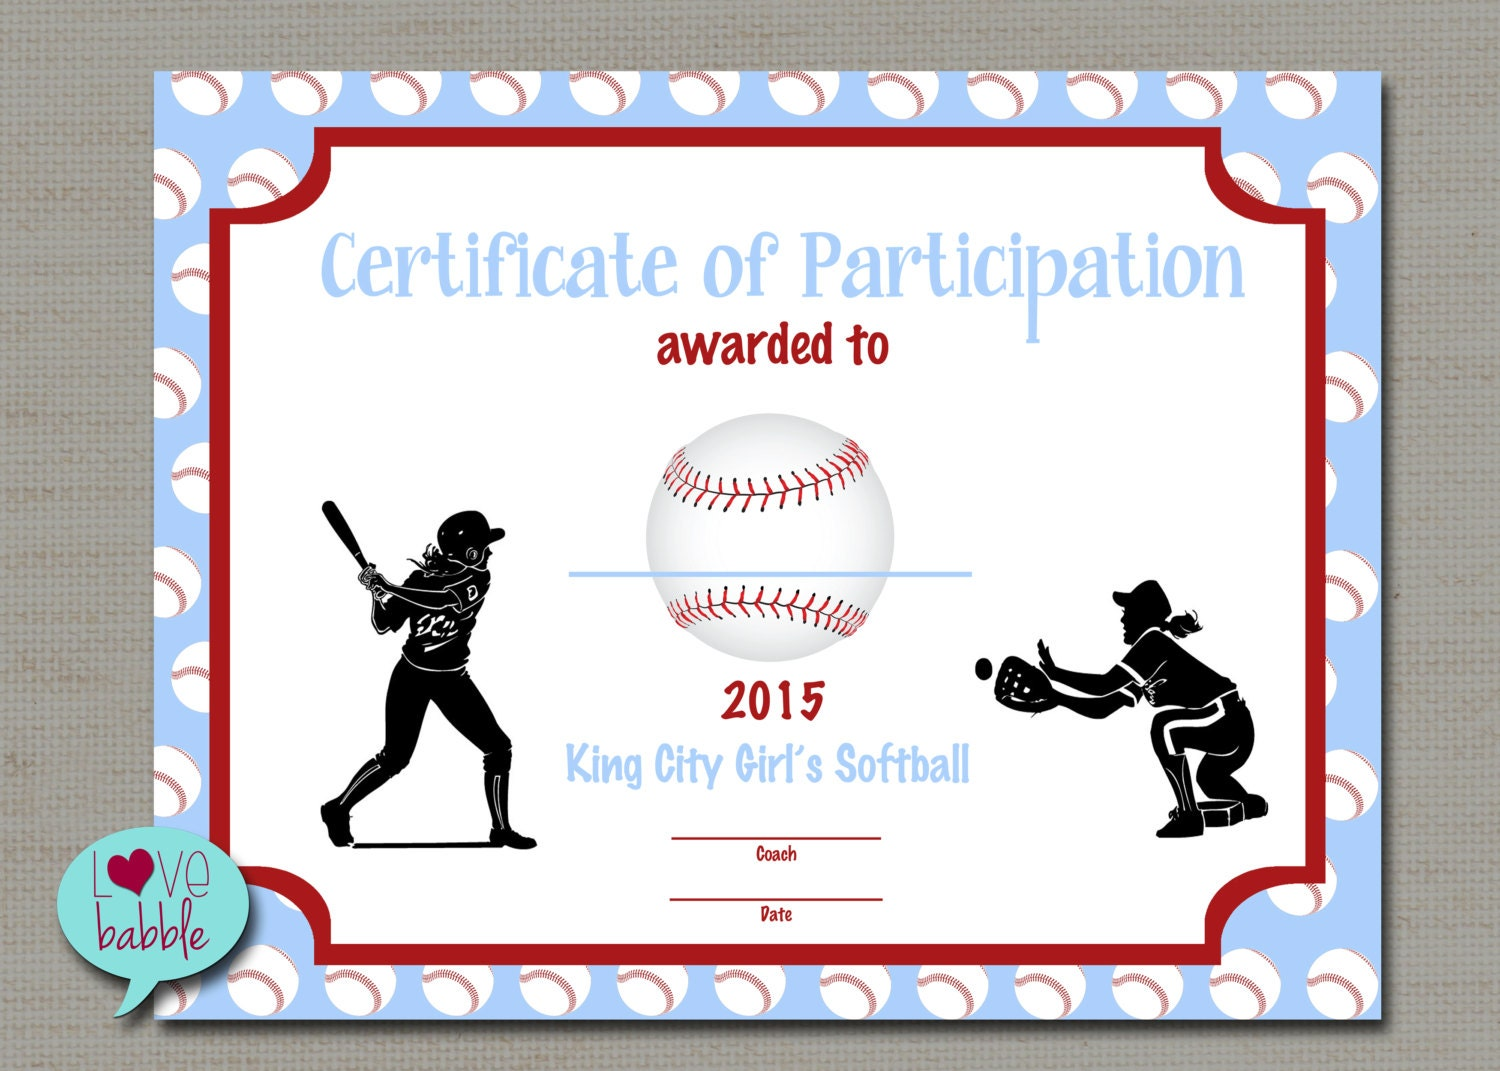 Girls softball baseball t ball award certificate printable zoom 1betcityfo Choice Image